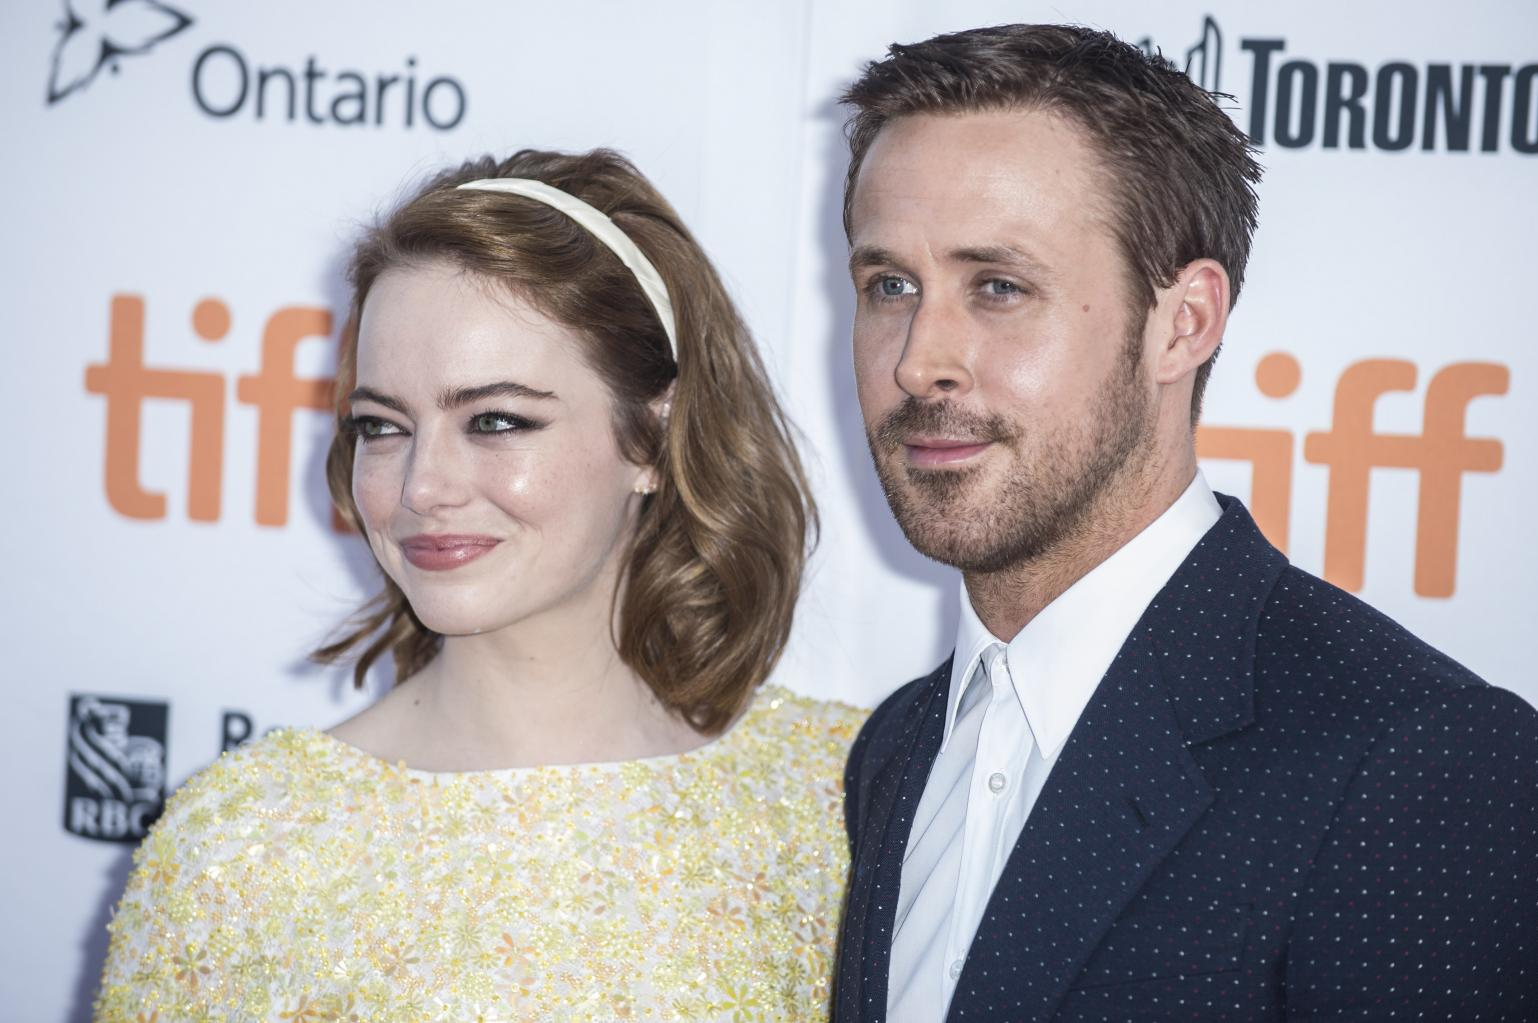 Listen To Ryan Gosling And Emma Stone  's Gorgeous    La La Land '  Duet